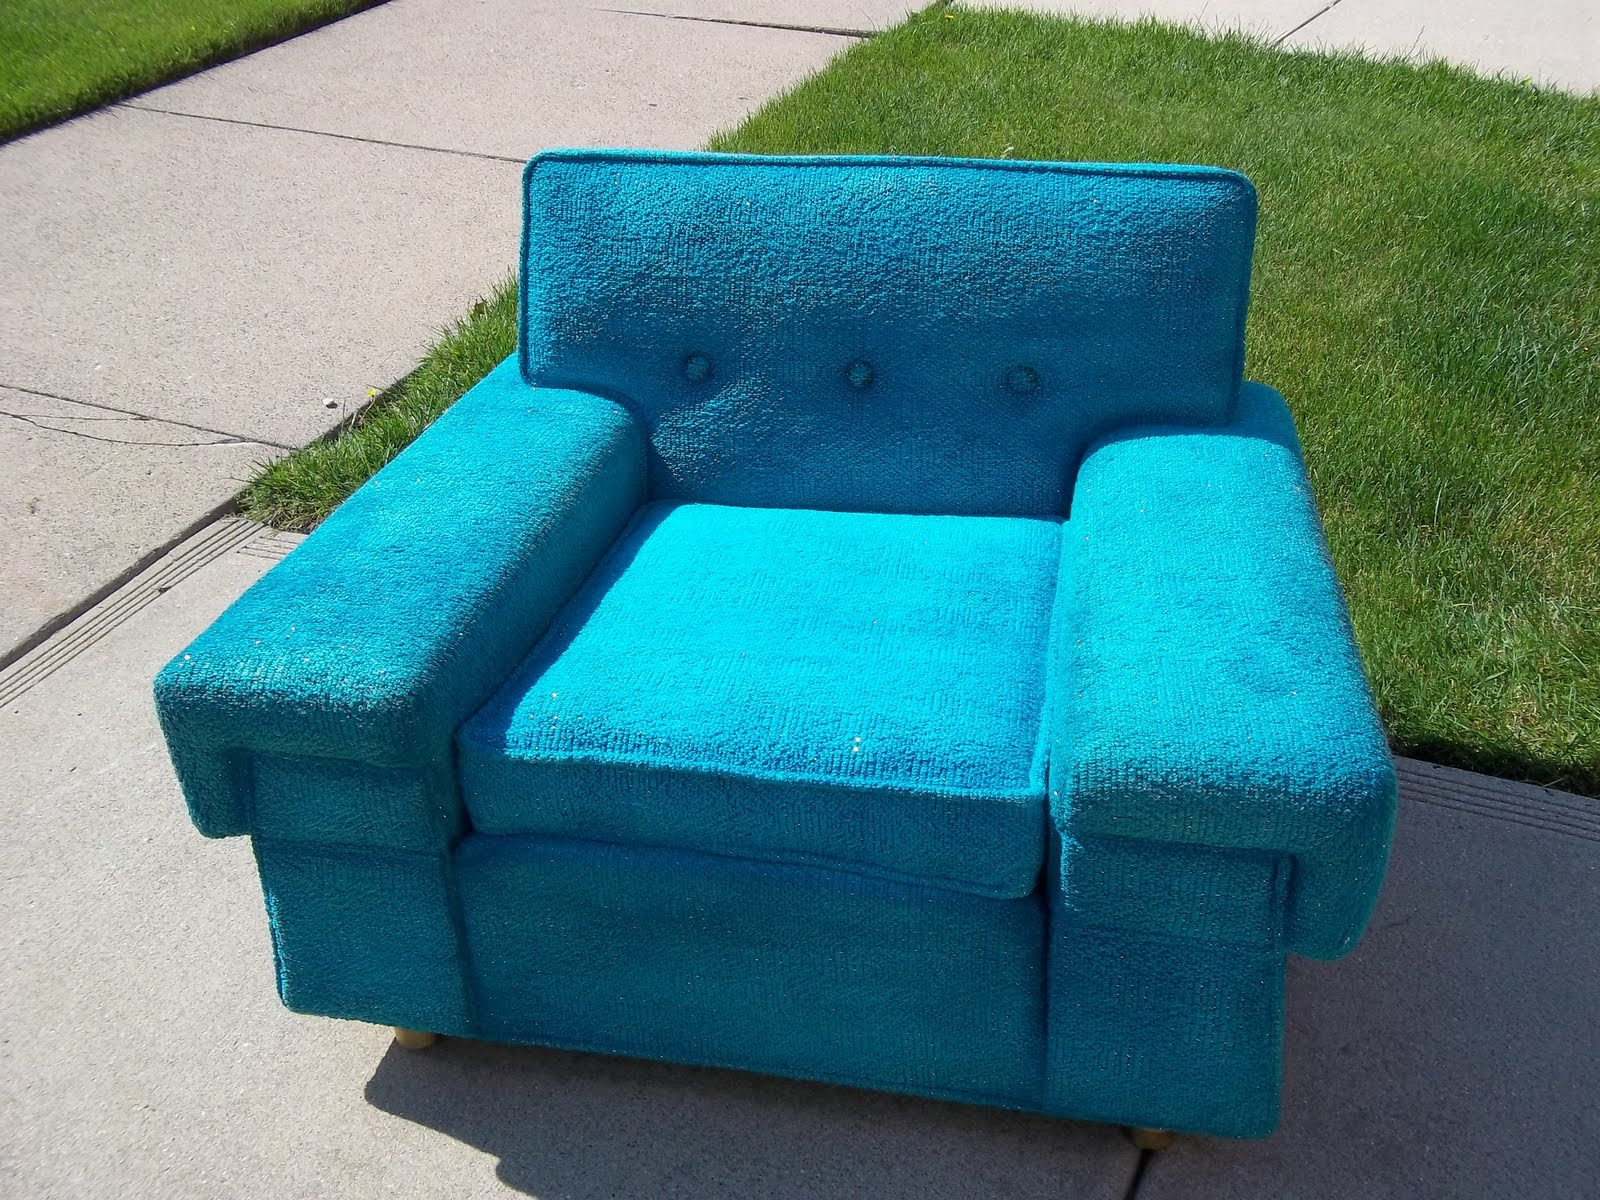 turquoise lounge chair motorized accessories funky mid century kroehler sold gatyo retro